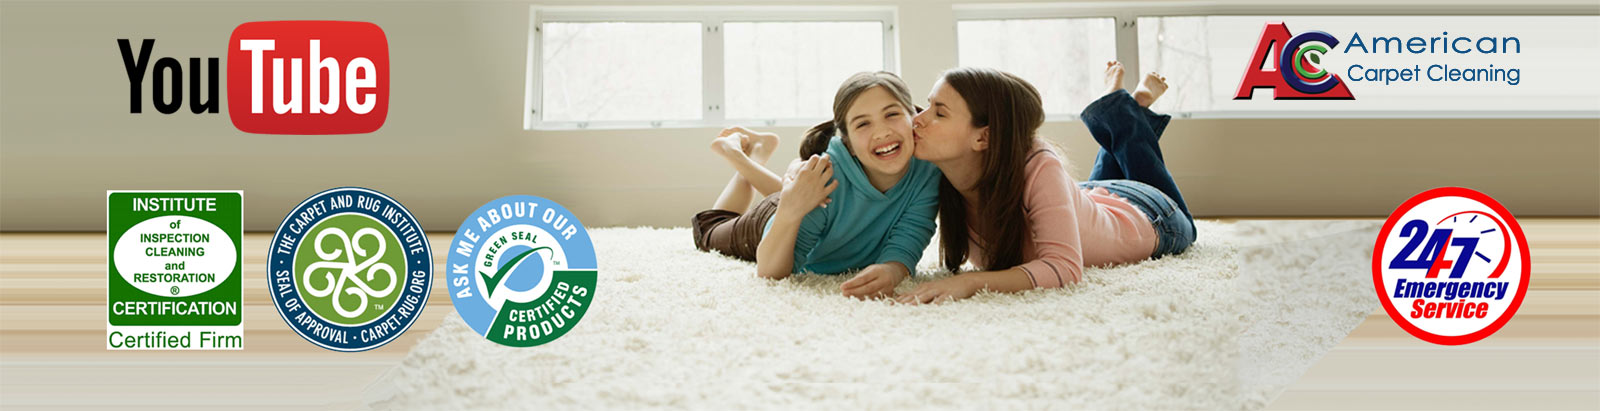 Visit American Carpet Cleaning YouTube Channel for more Carpet Cleaning in Winnetka | Carpet Cleaning Service in Winnetka | FREE Carpet Cleaning Quote in Winnetka, CA | Carpet Cleaning Service in Winnetka, CA | Carpet Cleaning in Winnetka, CA | Winnetka Carpet Cleaning | Carpet Cleaning Service in Thousand Oaks, CA | Carpet Cleaning Service in Simi Valley, CA | Carpet Cleaning Service in San Fernando Valley, CA | Carpet Cleaning Service in Santa Clarita Valley, CA | Carpet Cleaning Service in Ventura, CA | Carpet Cleaning Service in Beverly Hills, CA | Carpet Cleaning Service in Malibu, CA